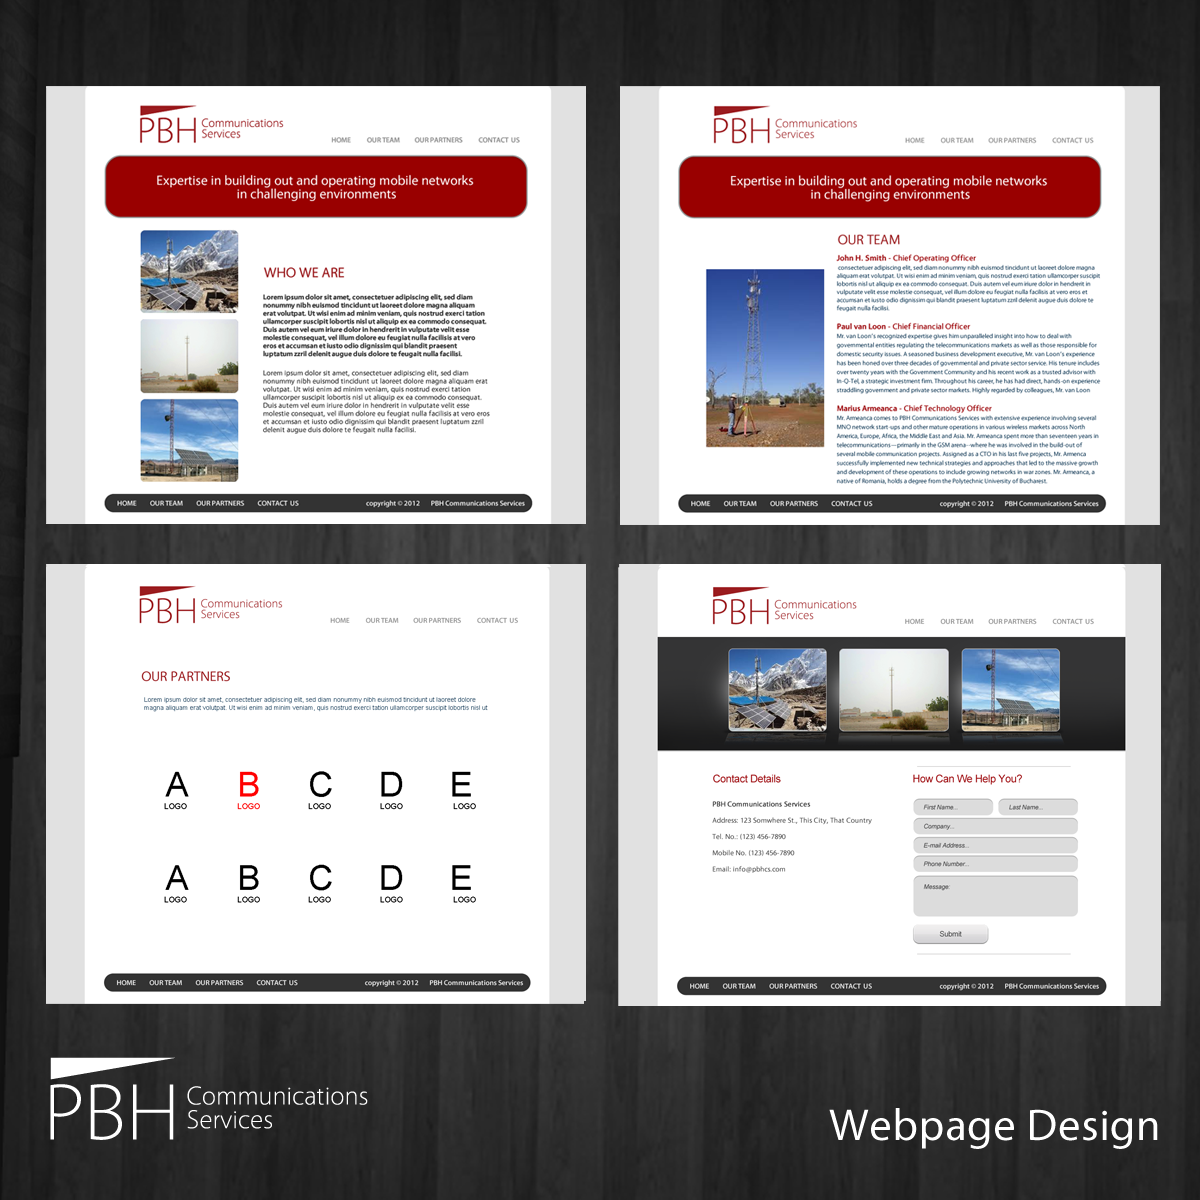 Web Page Design by storm - Entry No. 68 in the Web Page Design Contest New Web Page Design for PBH Communications Services.